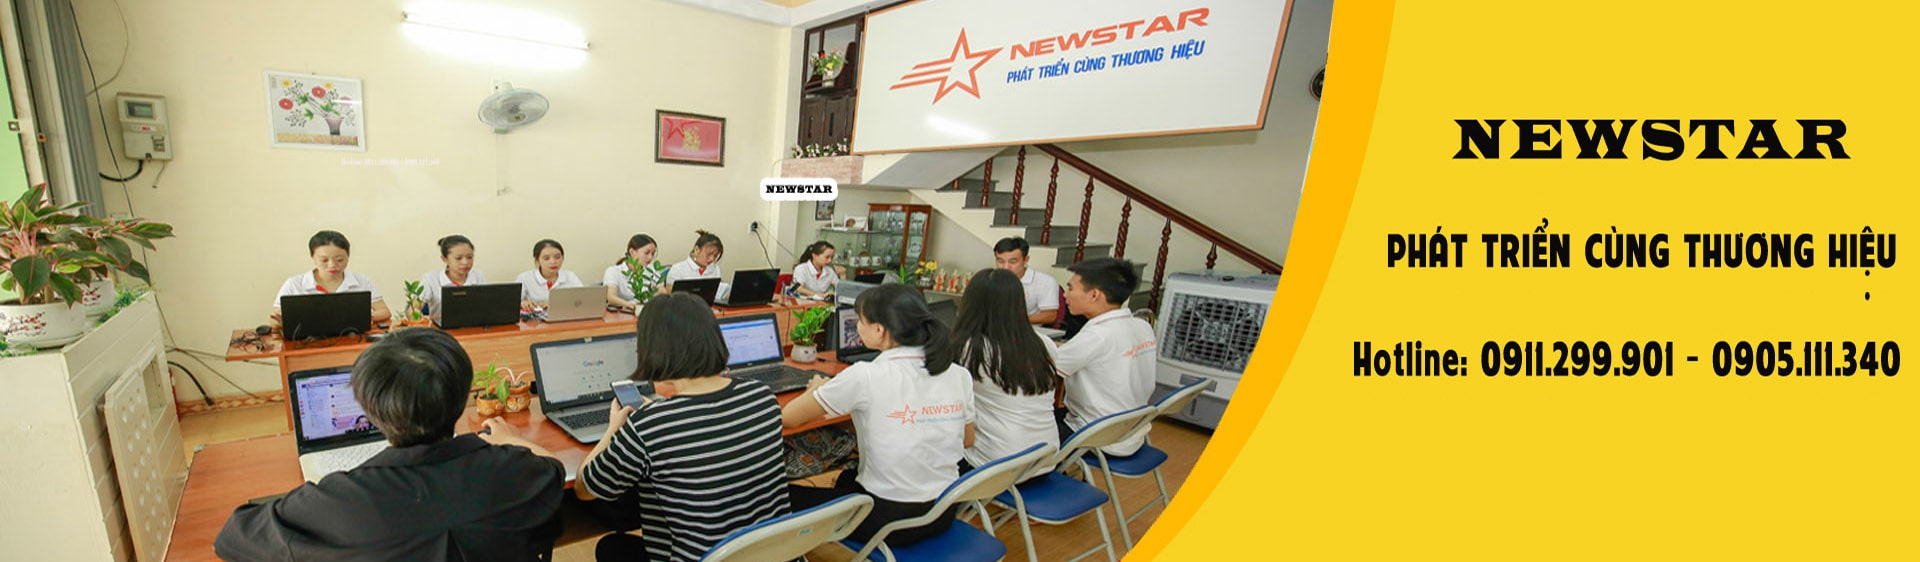 cong-ty-newstar-cong-ty-quang-cao-online